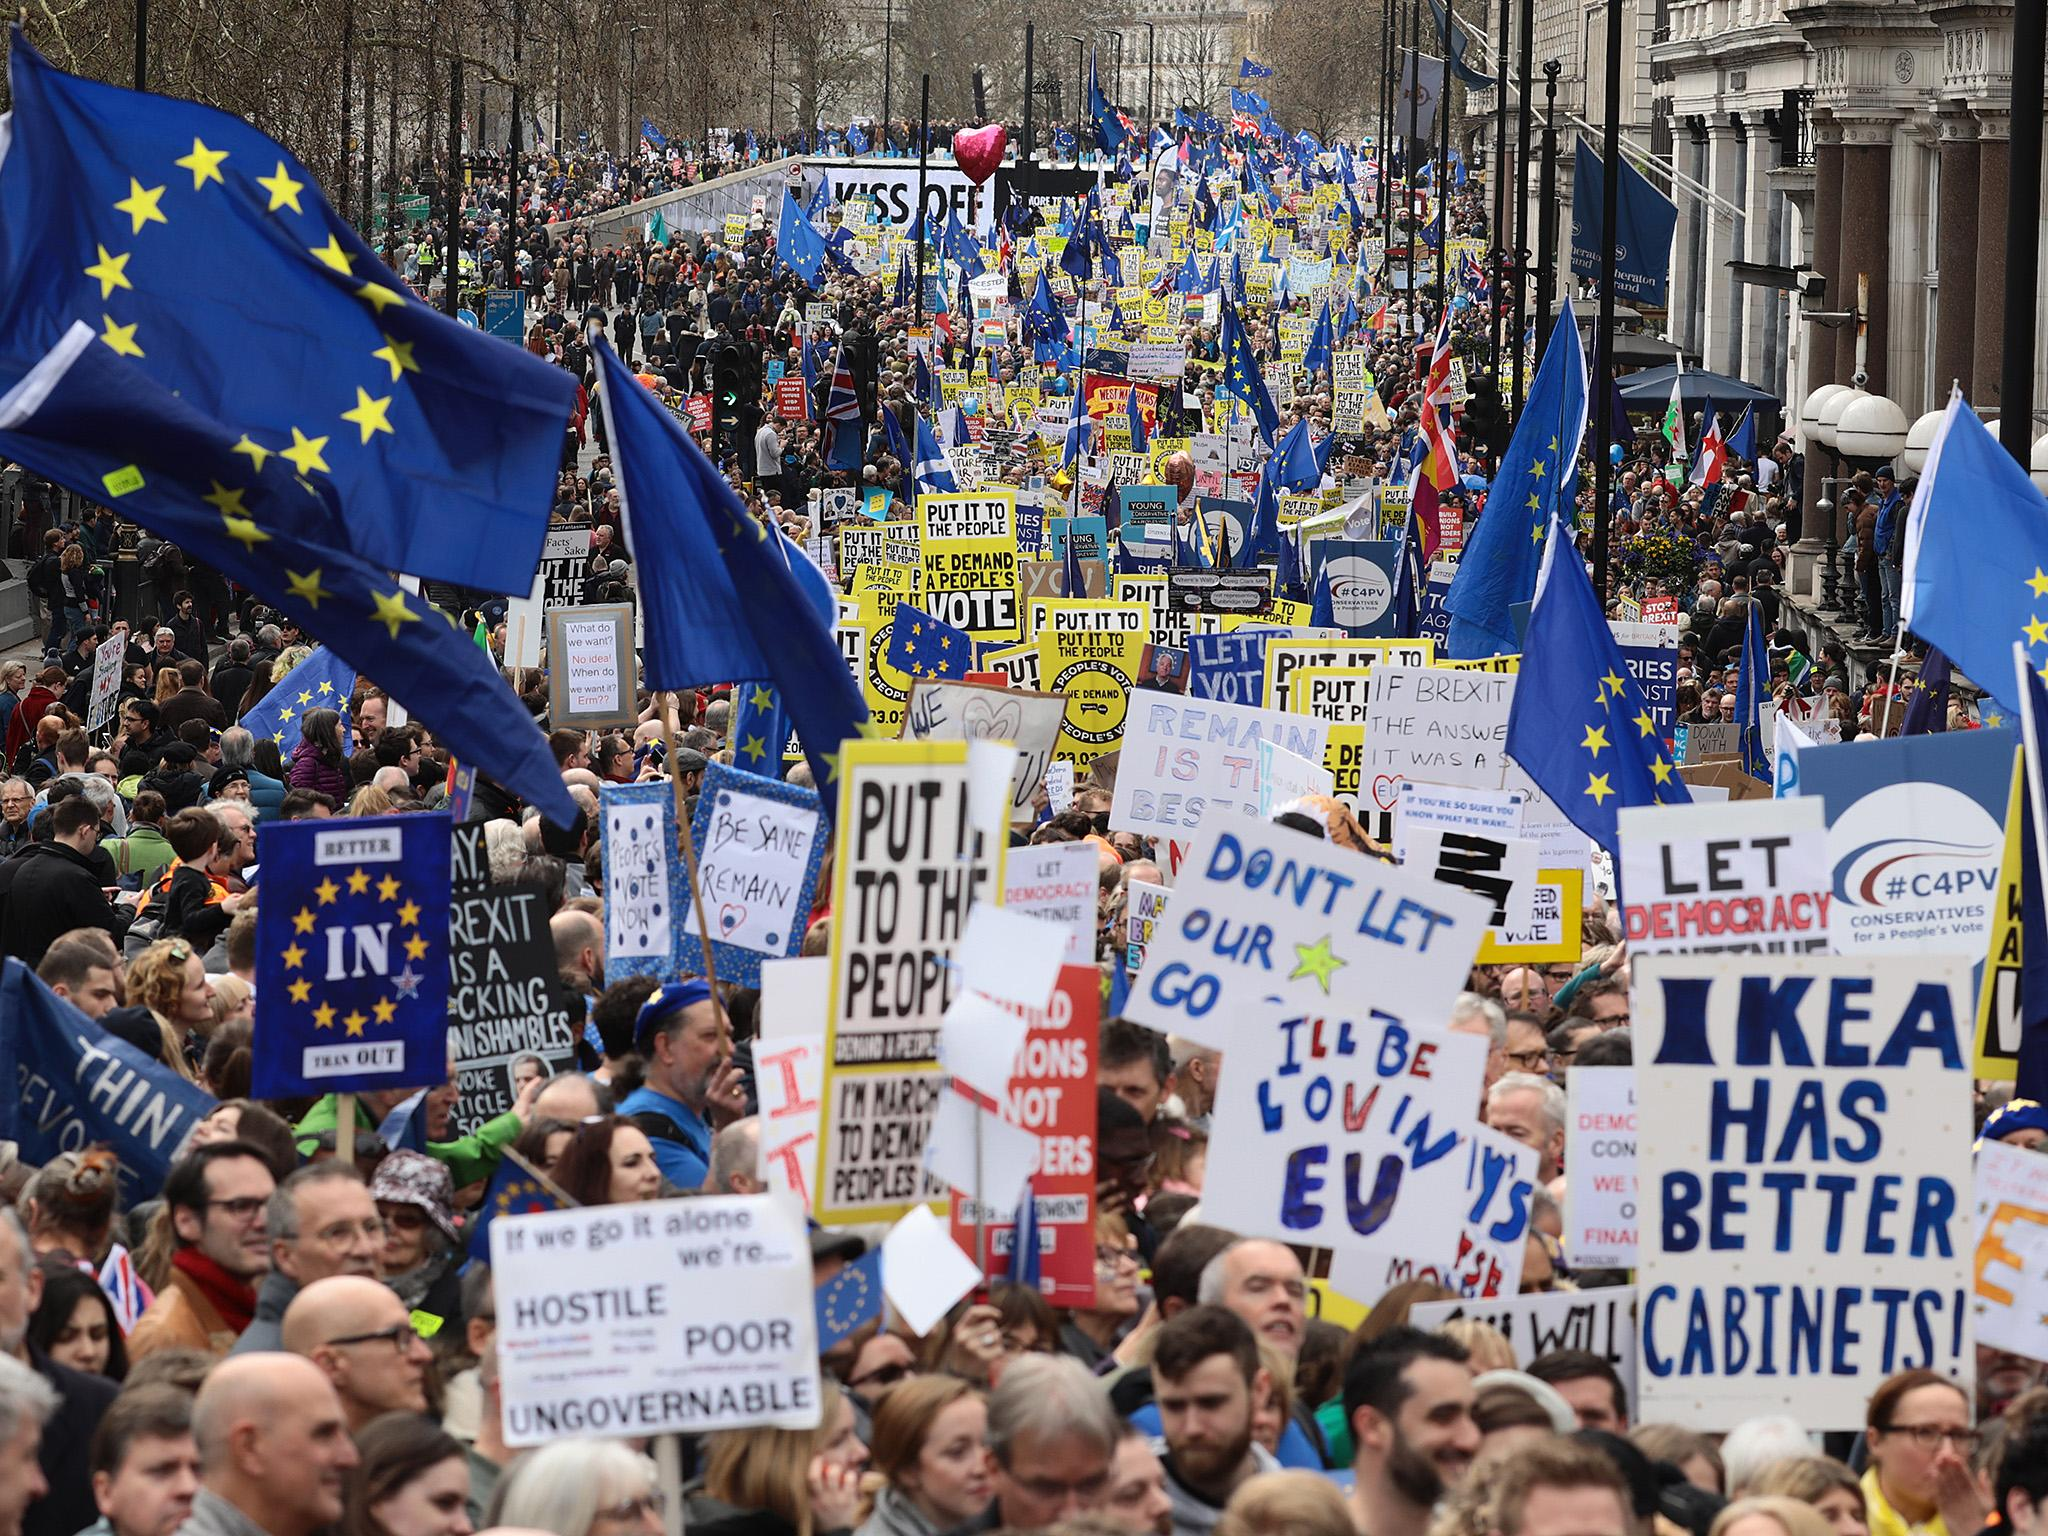 Brexit: Huge march calling for fresh referendum to be held less than two weeks before 31 October deadline for leaving EU